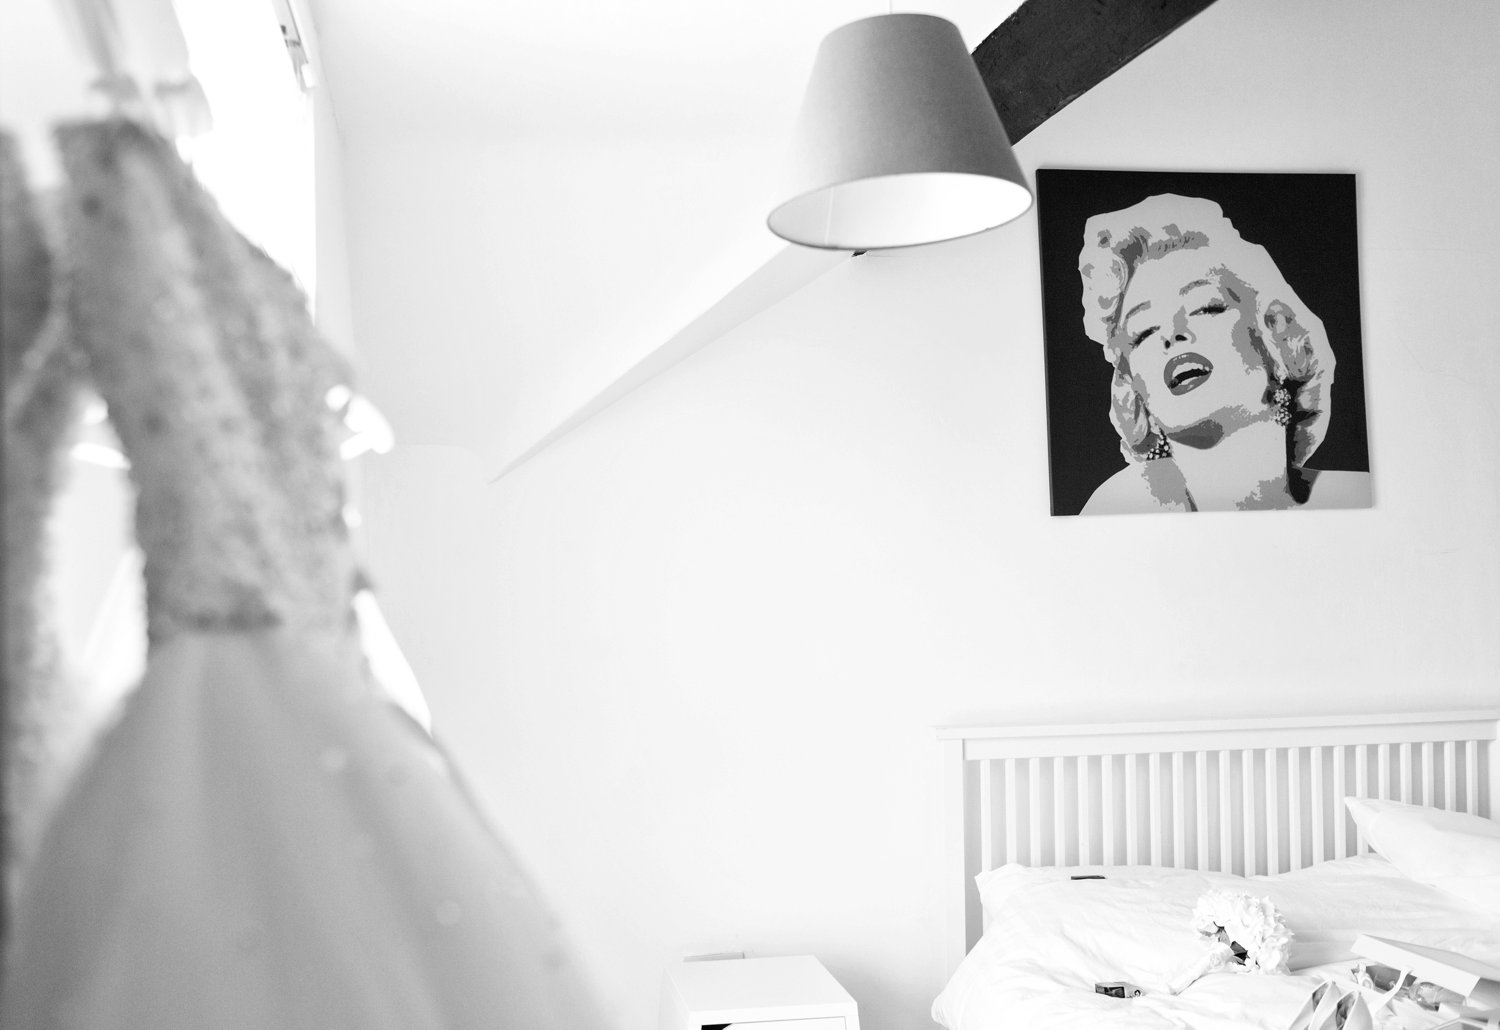 marilyn munroe print and wedding dress